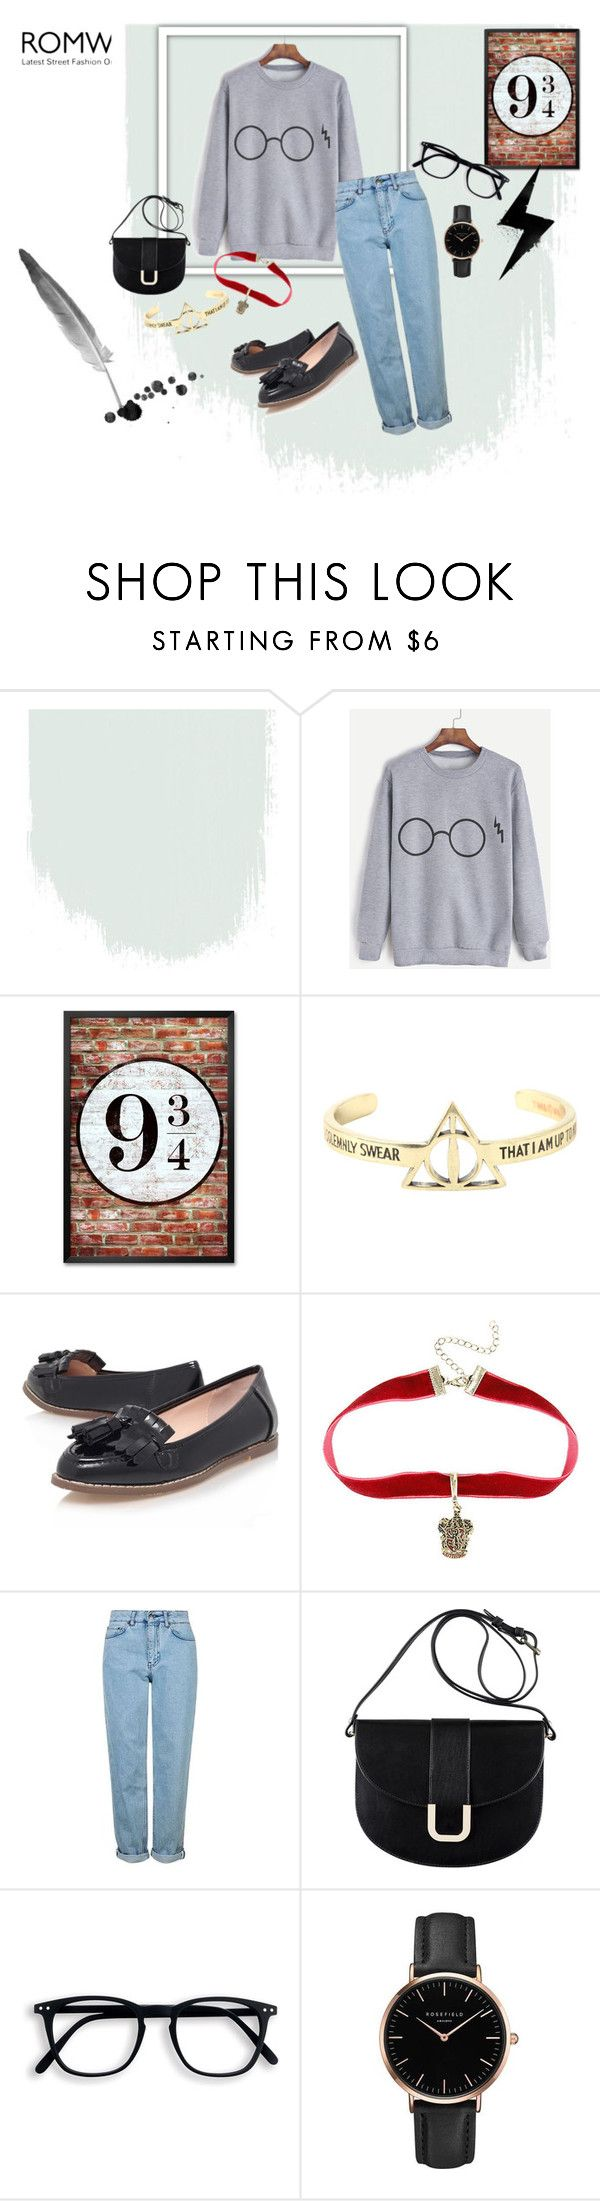 """""""Potter"""" by ellenias ❤ liked on Polyvore featuring Warner Bros., Carvela, Topshop and A.P.C."""